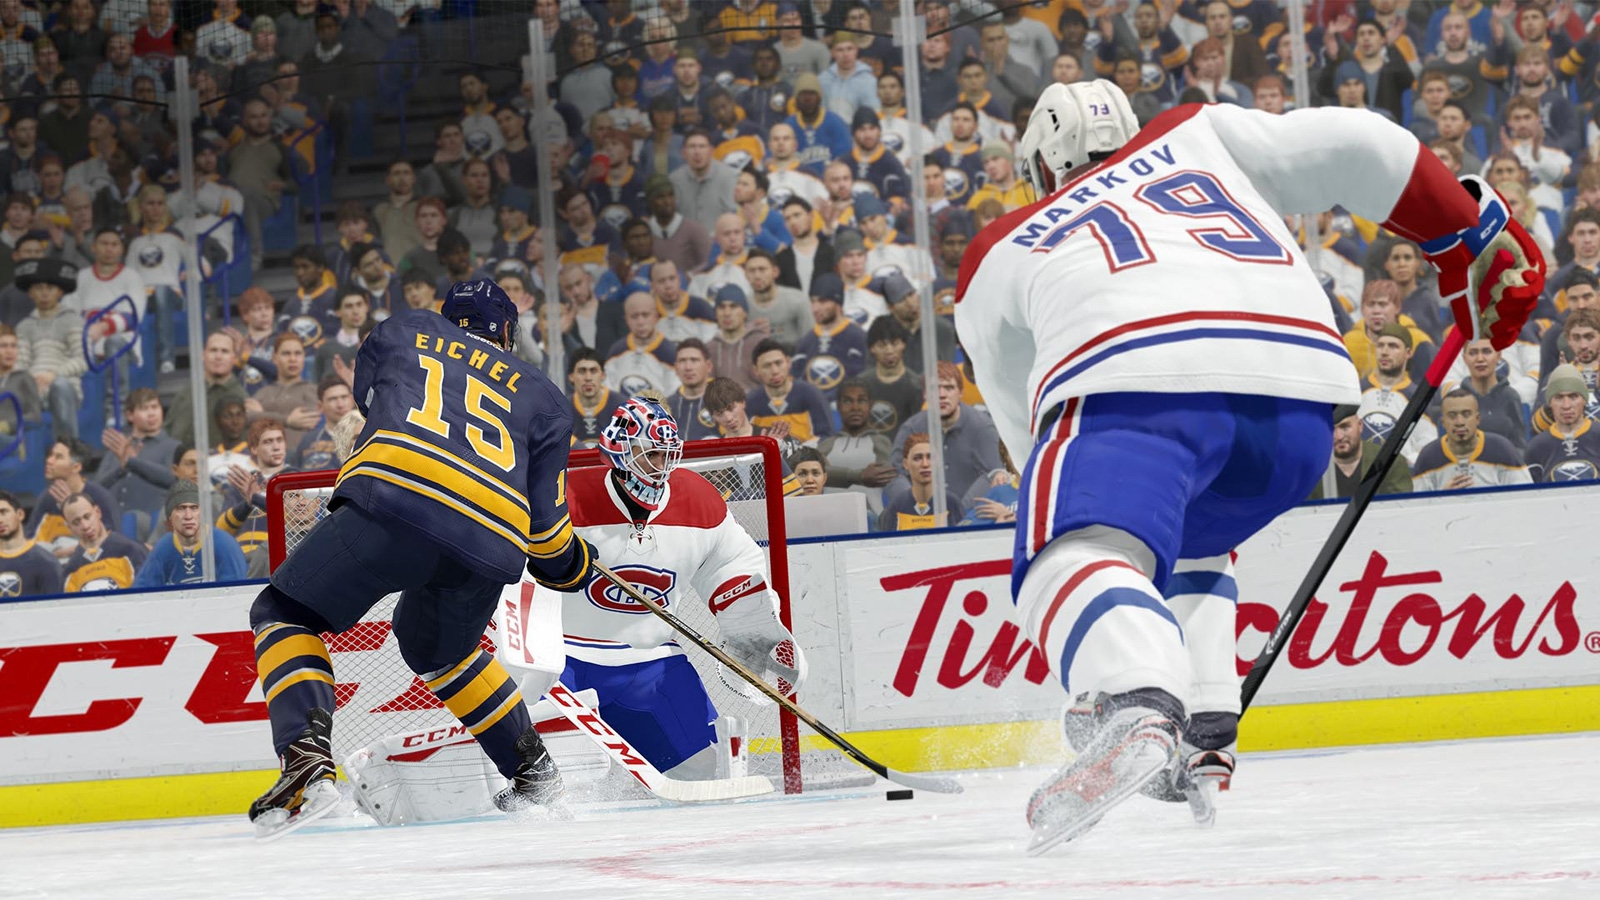 NHL's first eSports tournament begins March 24th | DeviceDaily.com